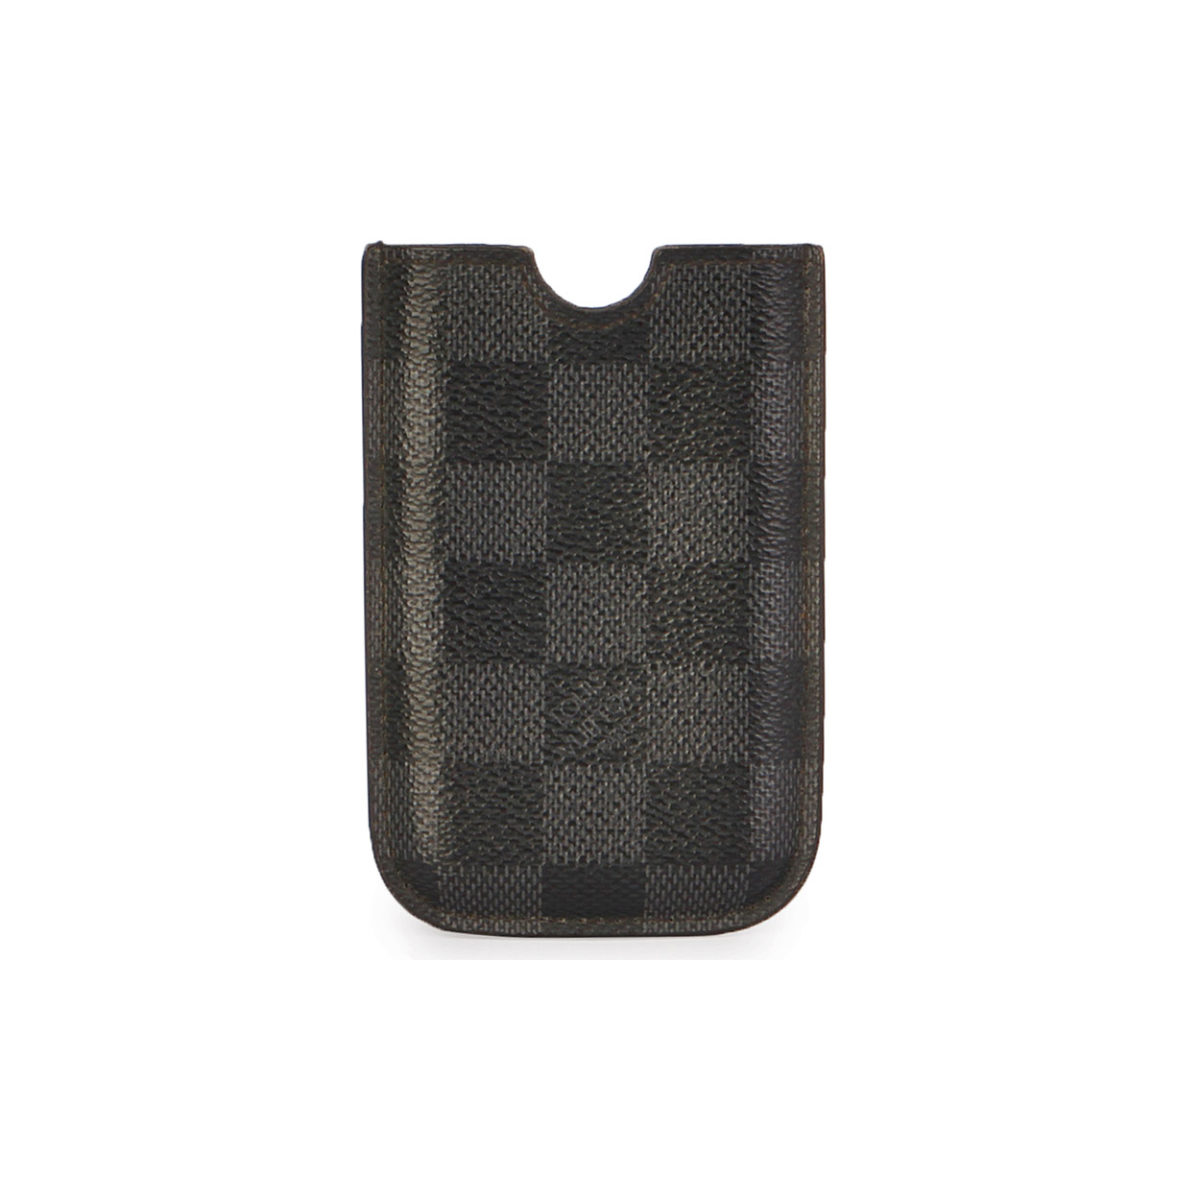 più recente 25fb4 da444 LOUIS VUITTON Damier Graphite iPhone 5/5S Cover